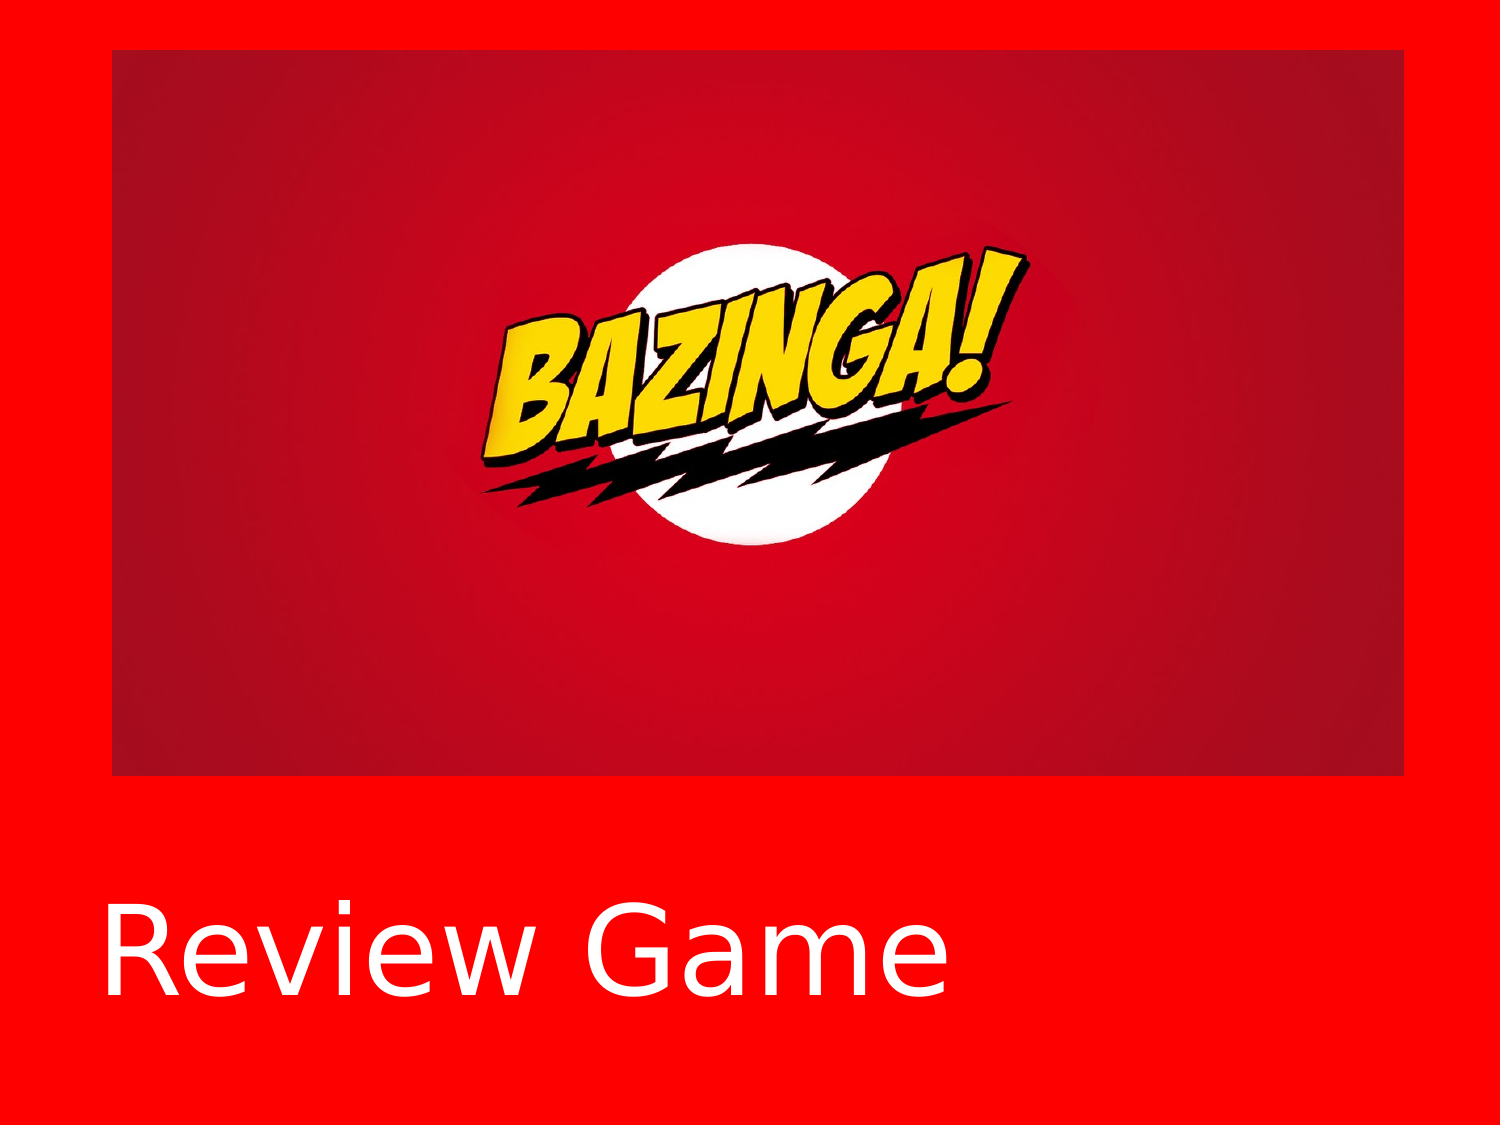 Bazinga Exam Review Resource Preview